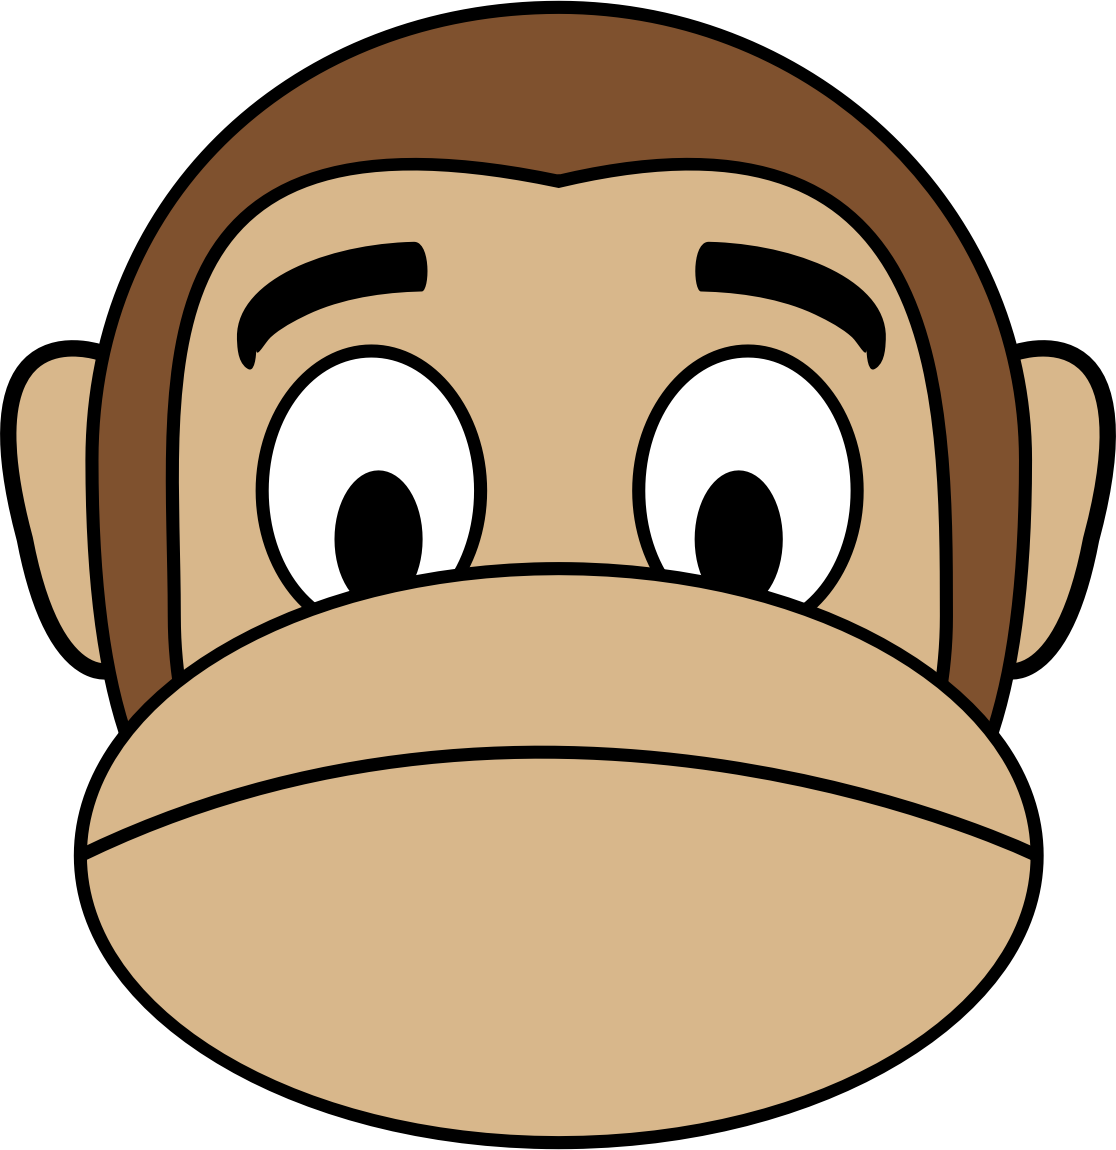 clipart stock Free monkey cliparts download. Ape clipart sad.